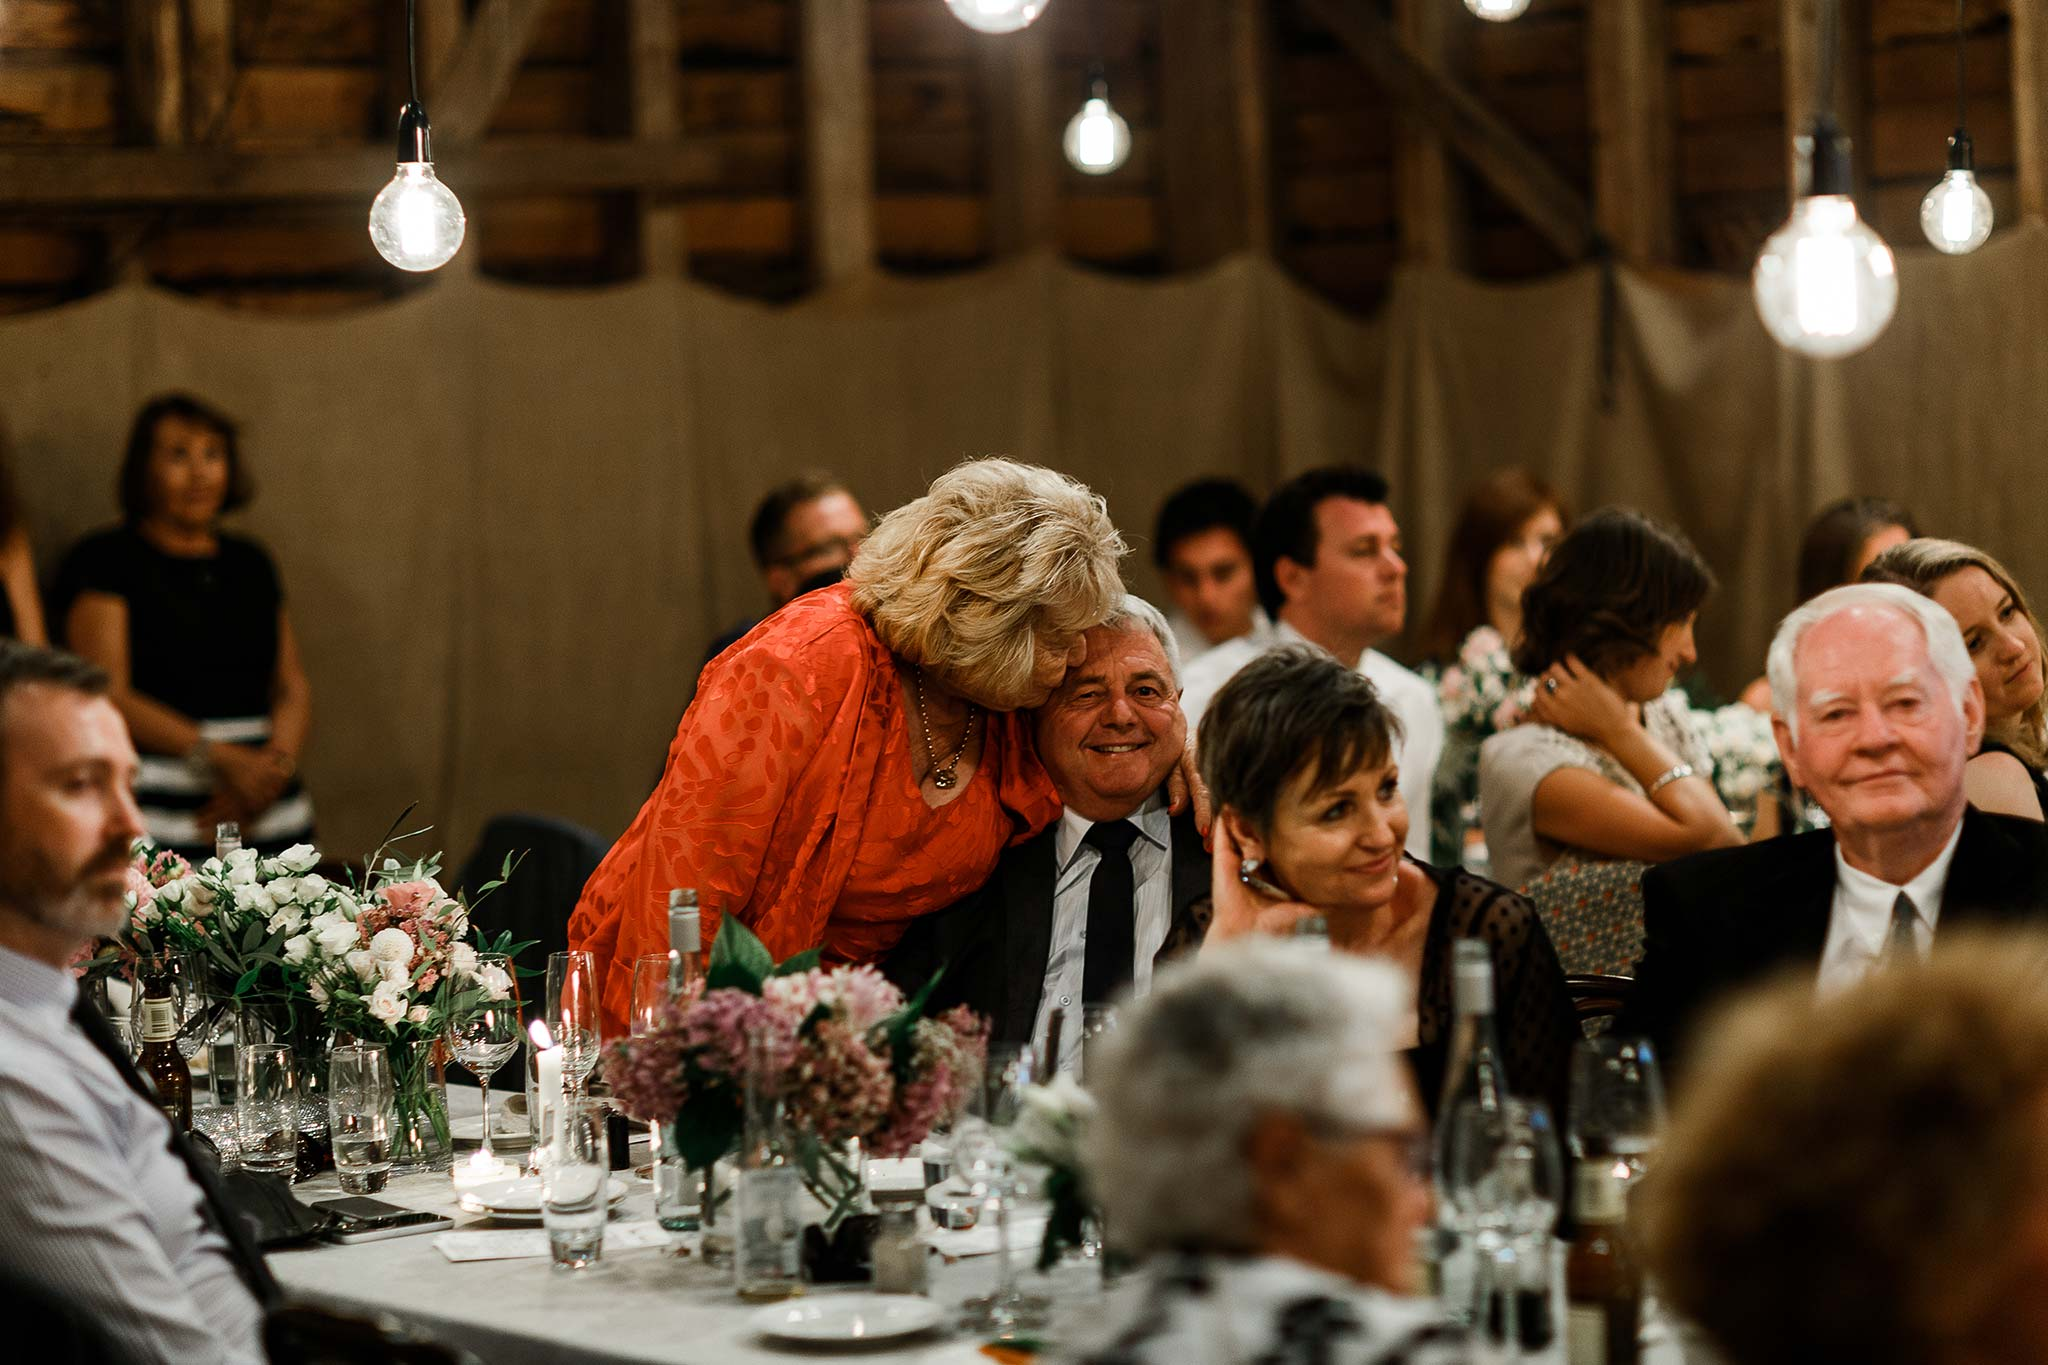 Launceston-Brickendon-barn-Wedding-Photographer-reception-kiss